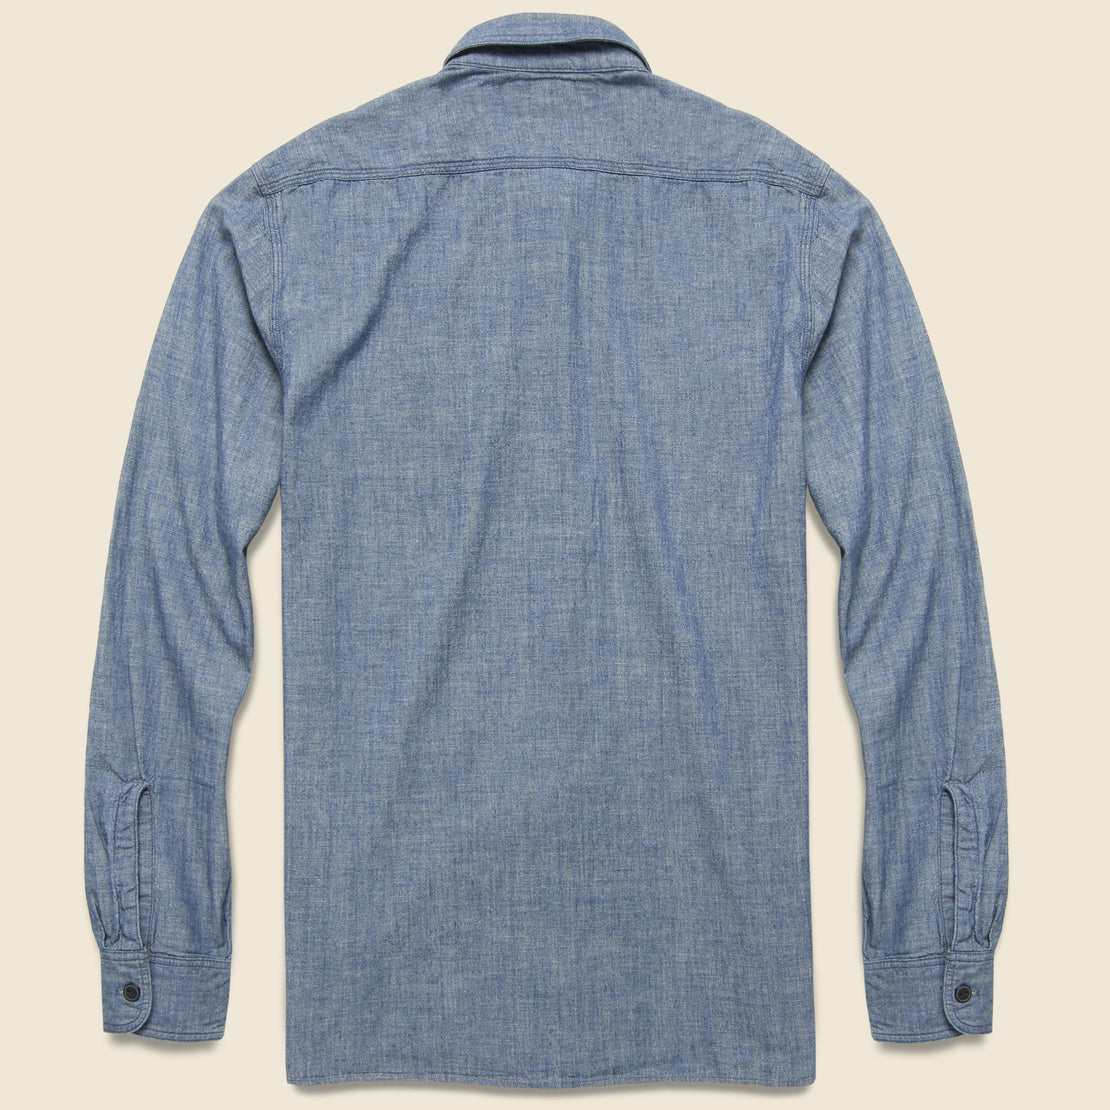 Indigo Chambray Workshirt - Indigo Rinse